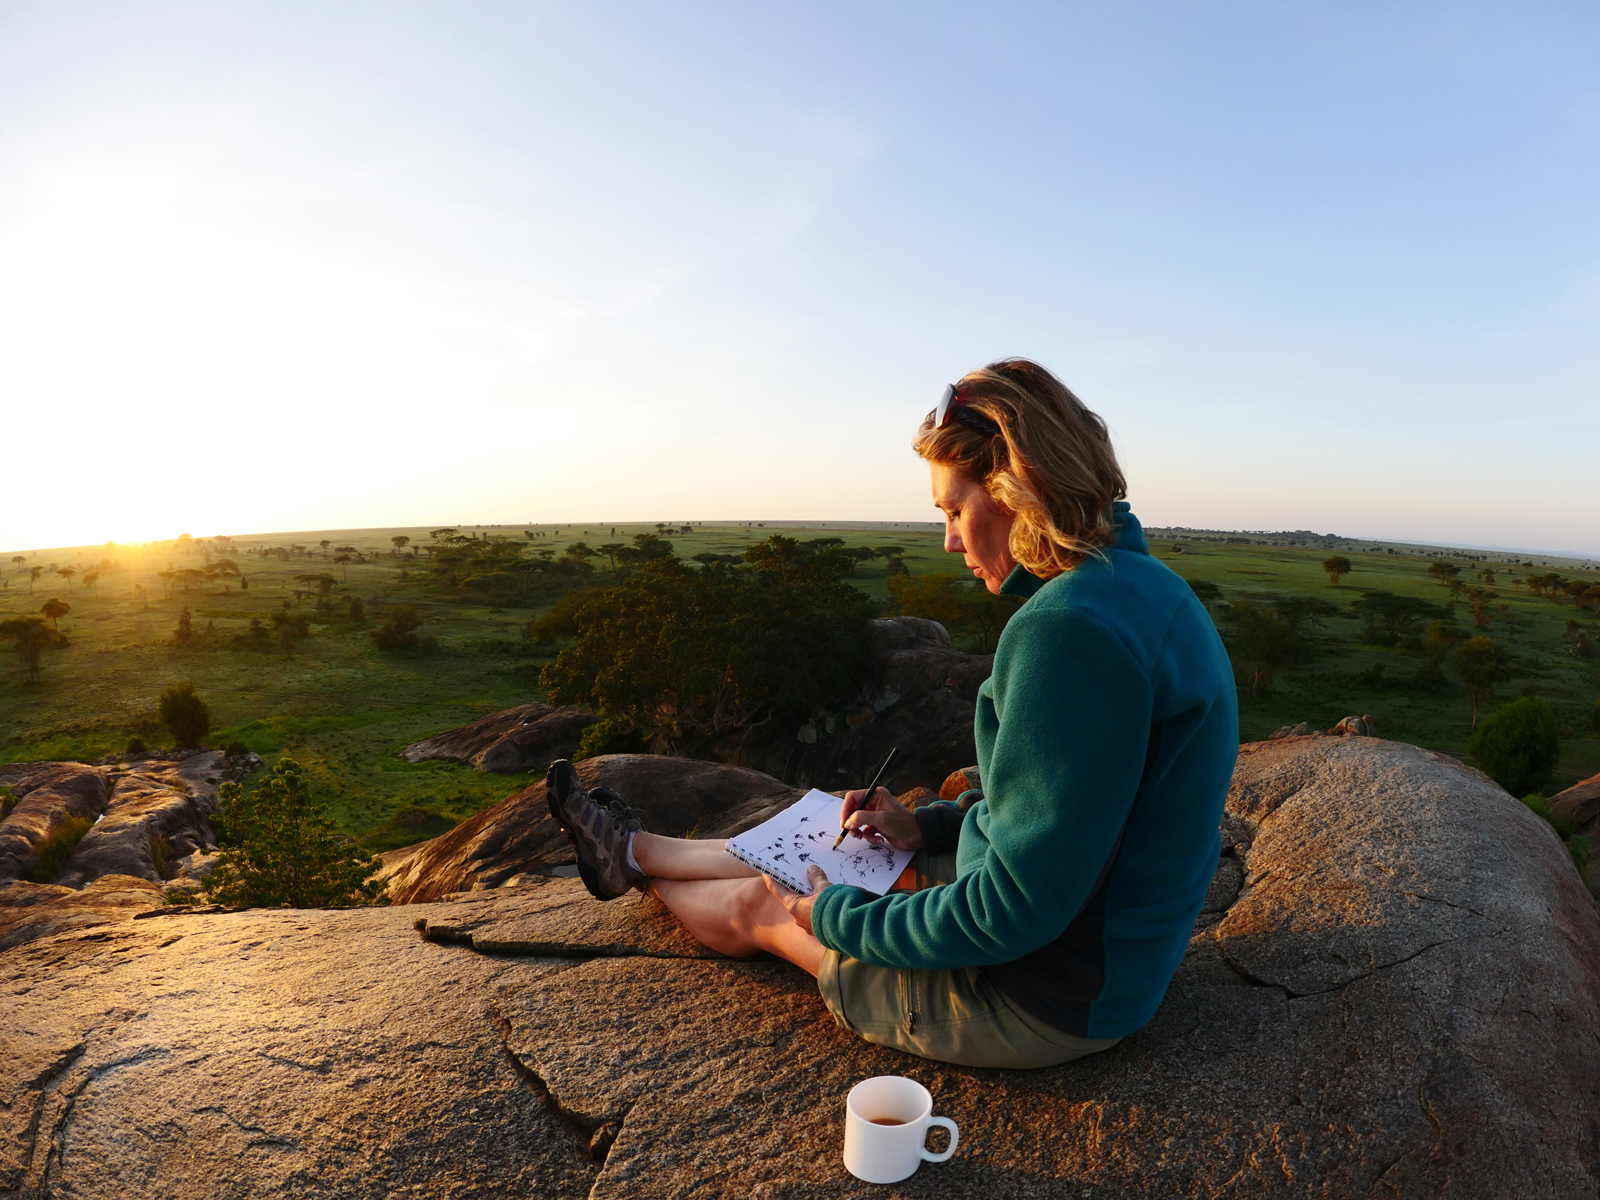 Woman sitting on rock drawing, Serengeti